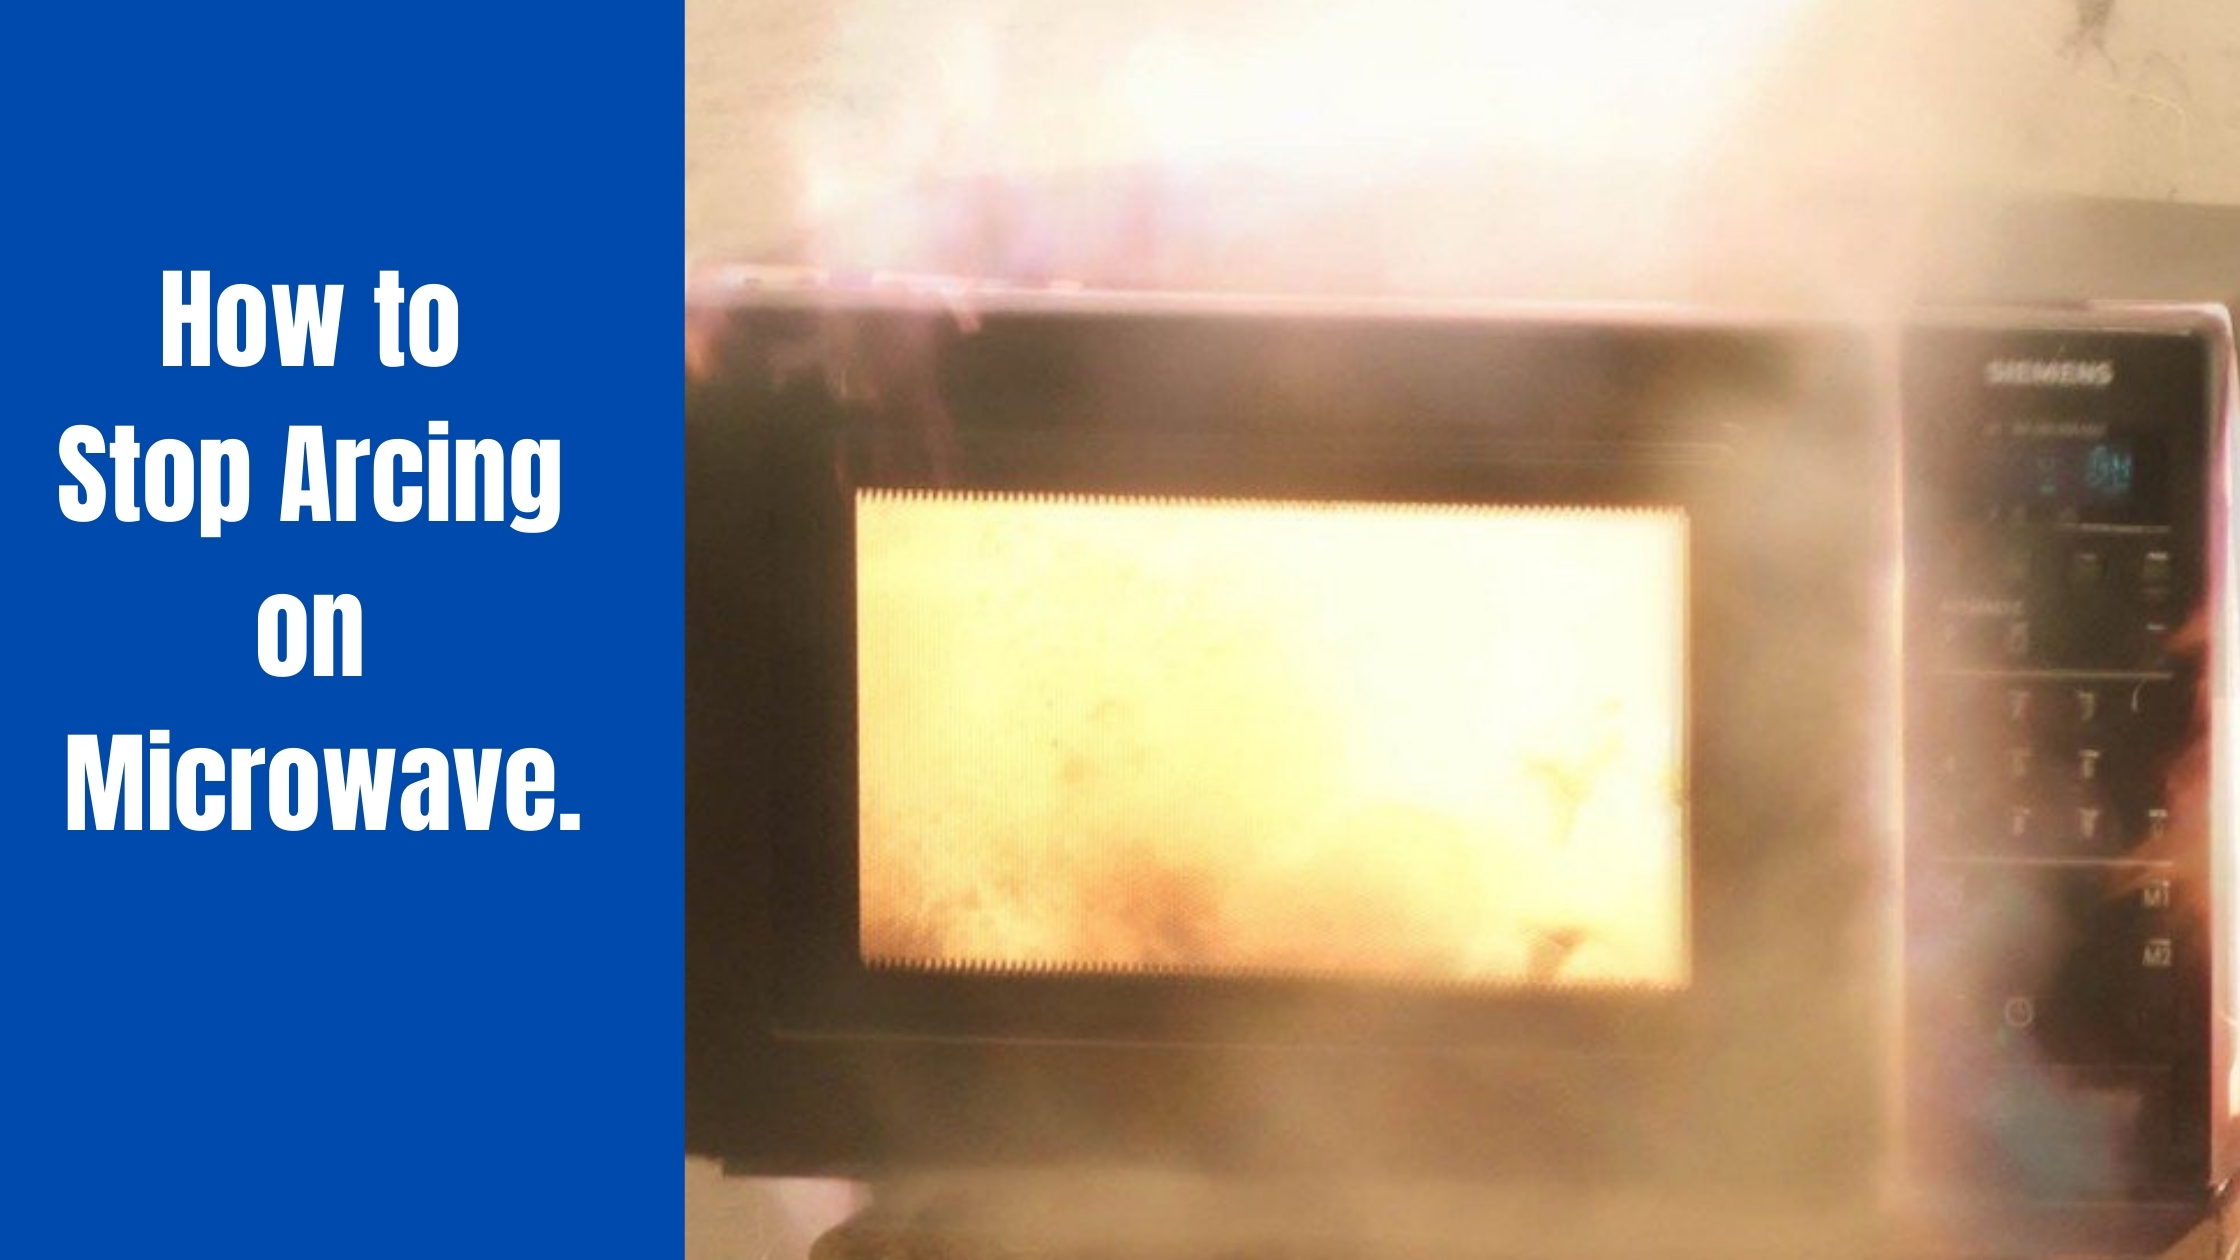 How to Stop Arcing on Microwave